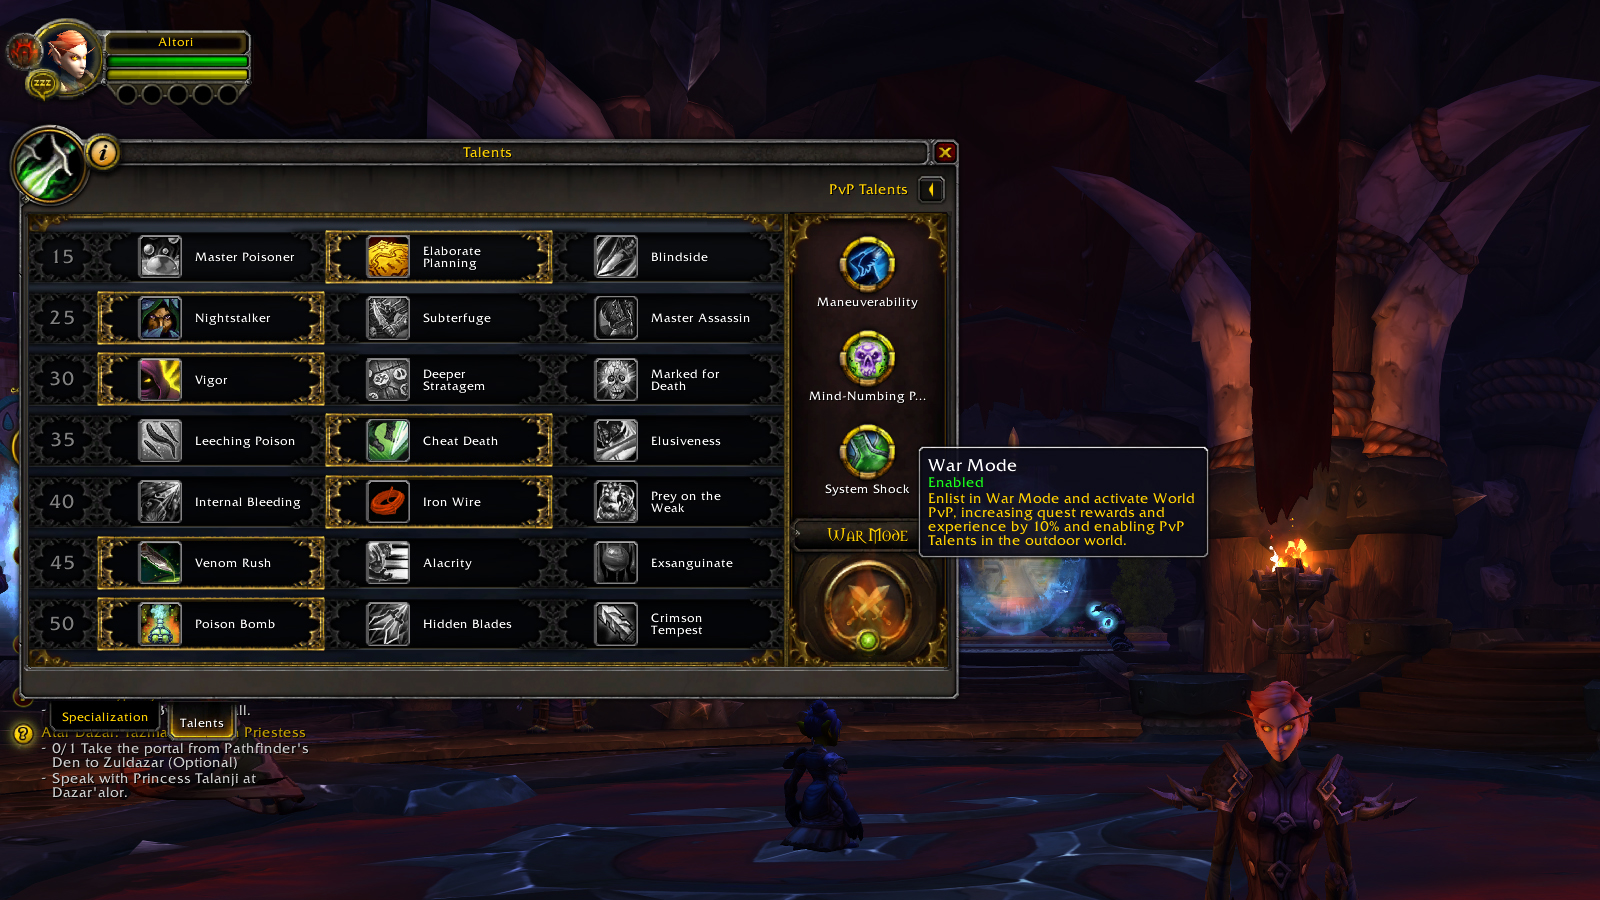 An image showing War Mode in World of Warcraft in the Talents panel